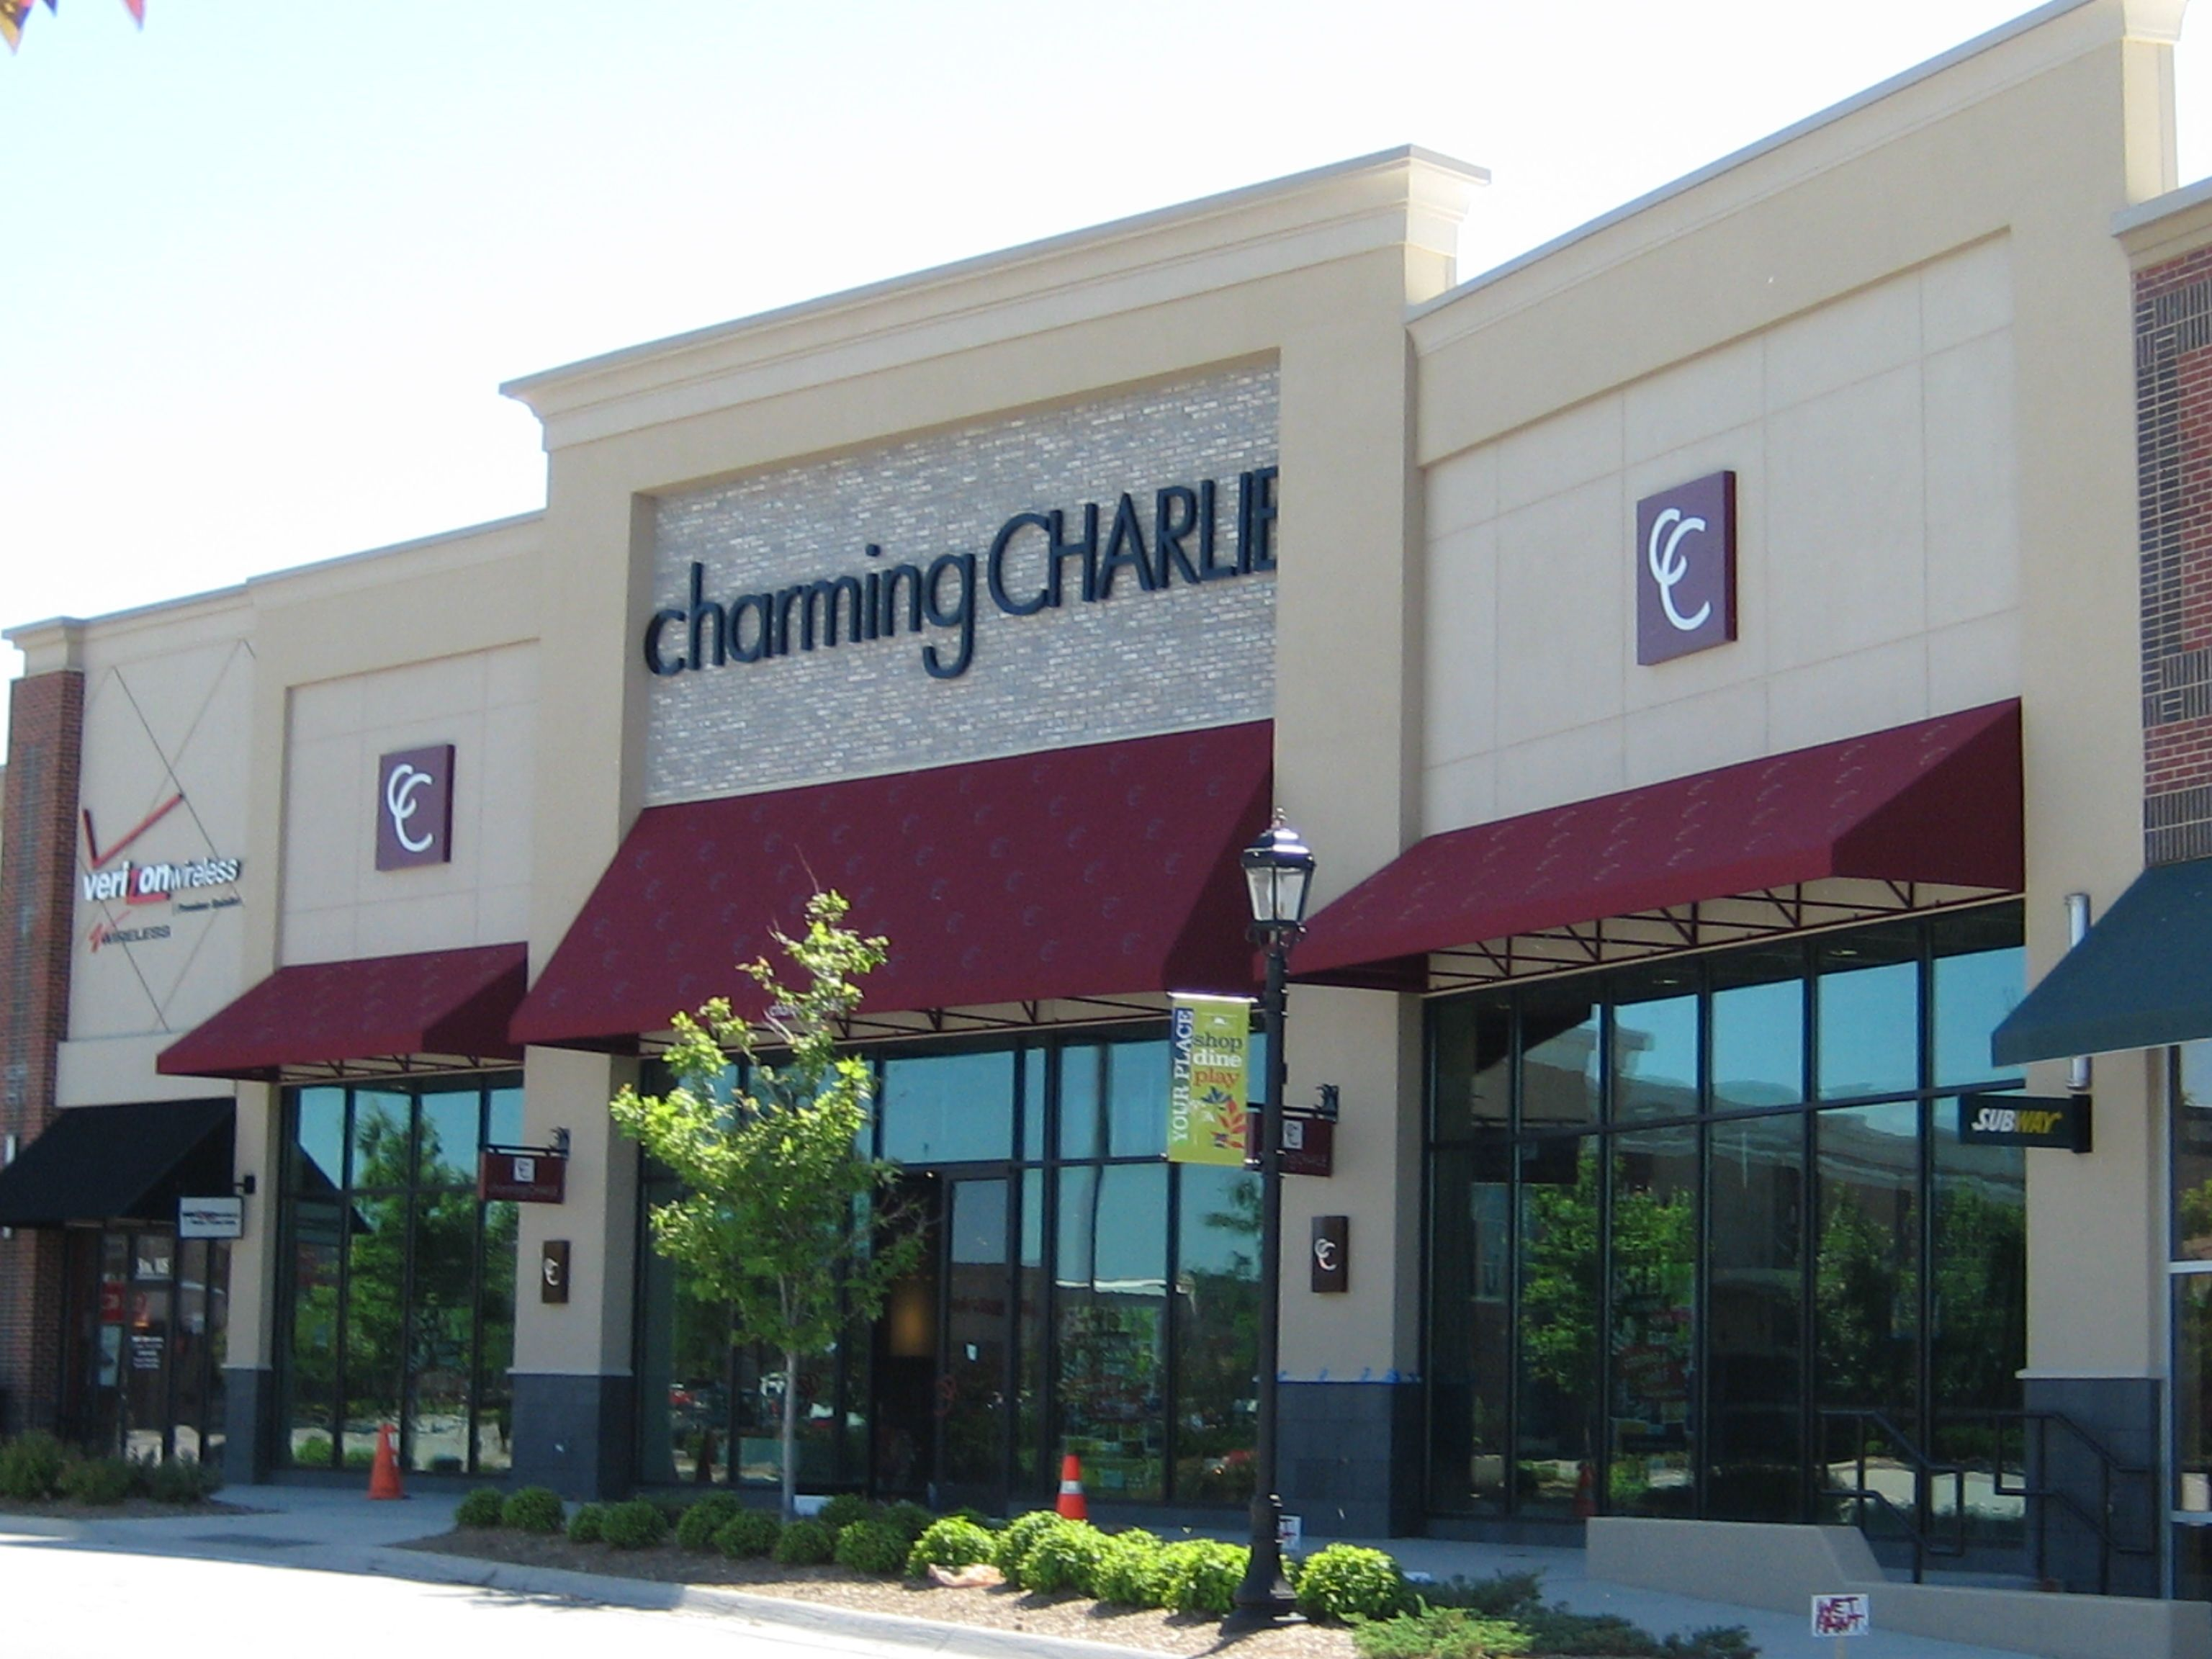 Charming Charlie S Awnings Village Pointe Shopping Center Boat Covers Awning Repair